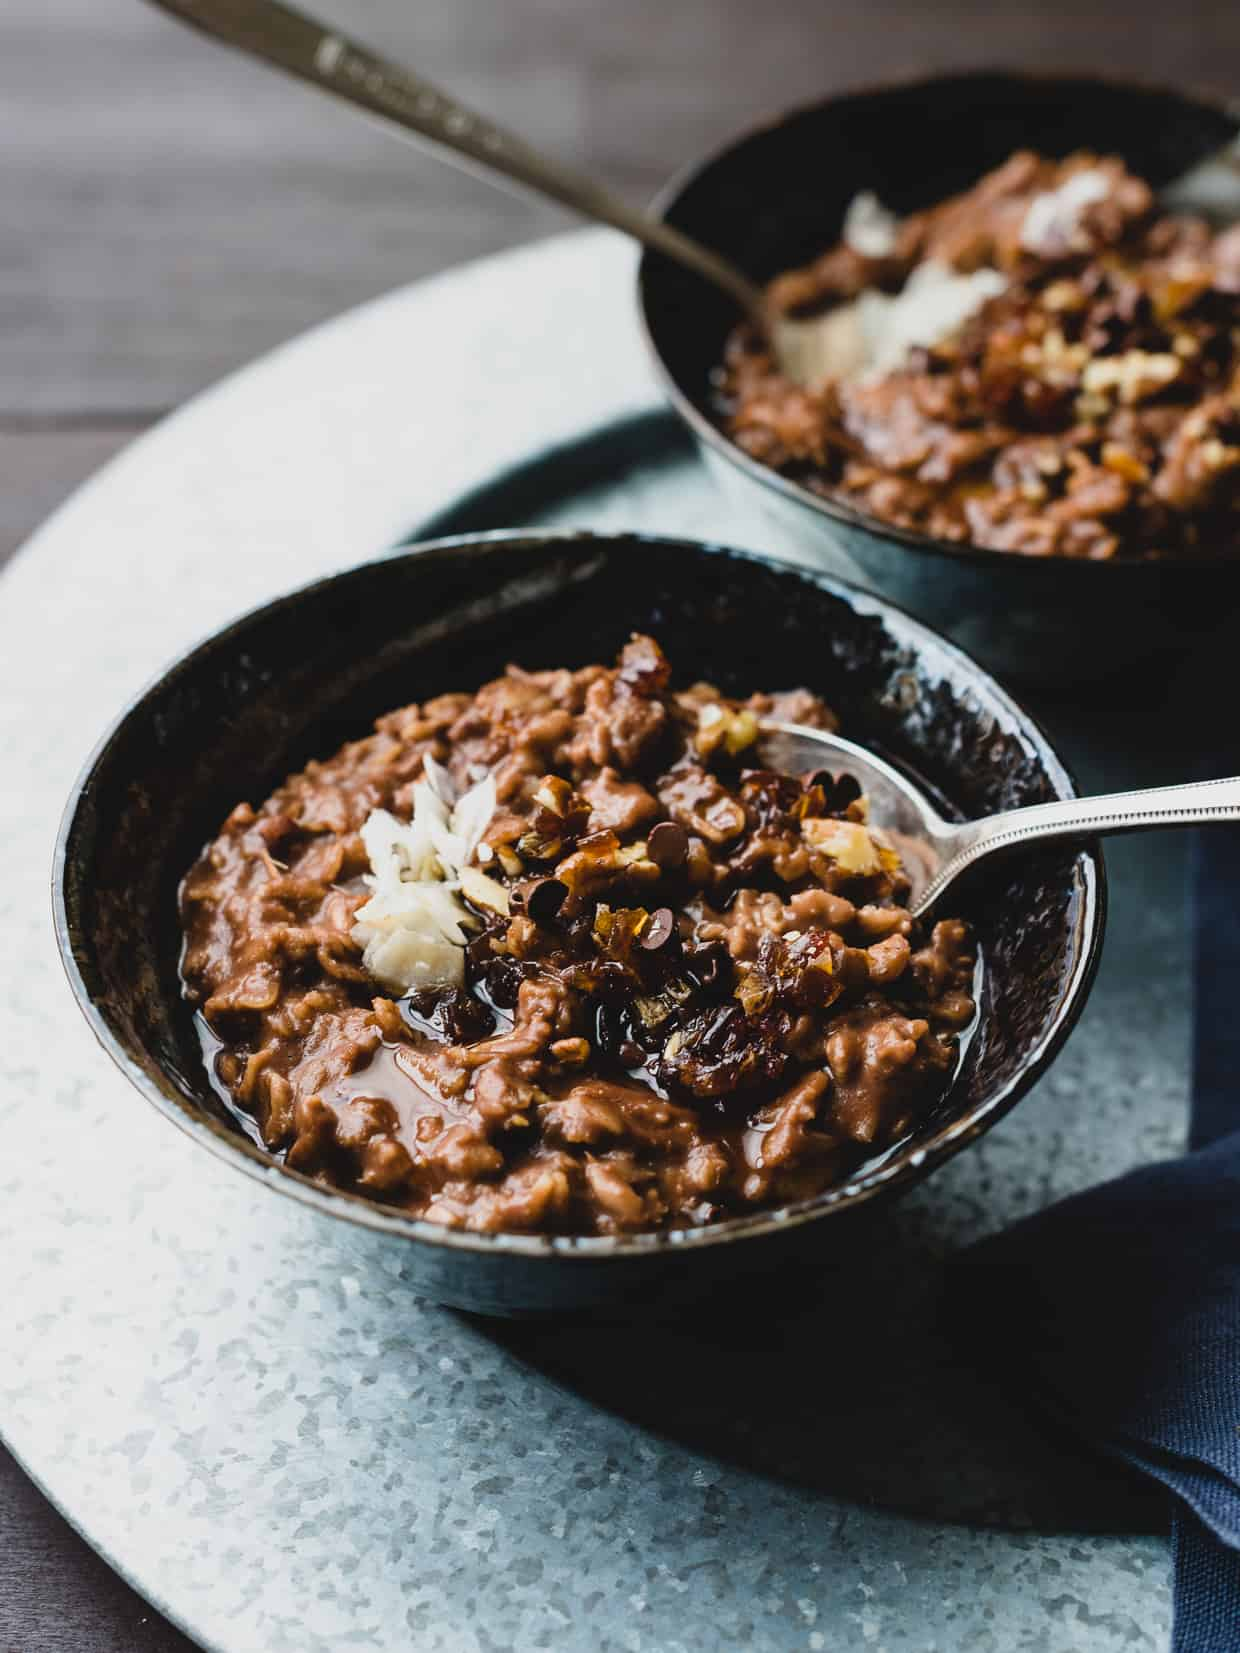 A bowl of Chocolate Porridge topped with mini chocolate chips.